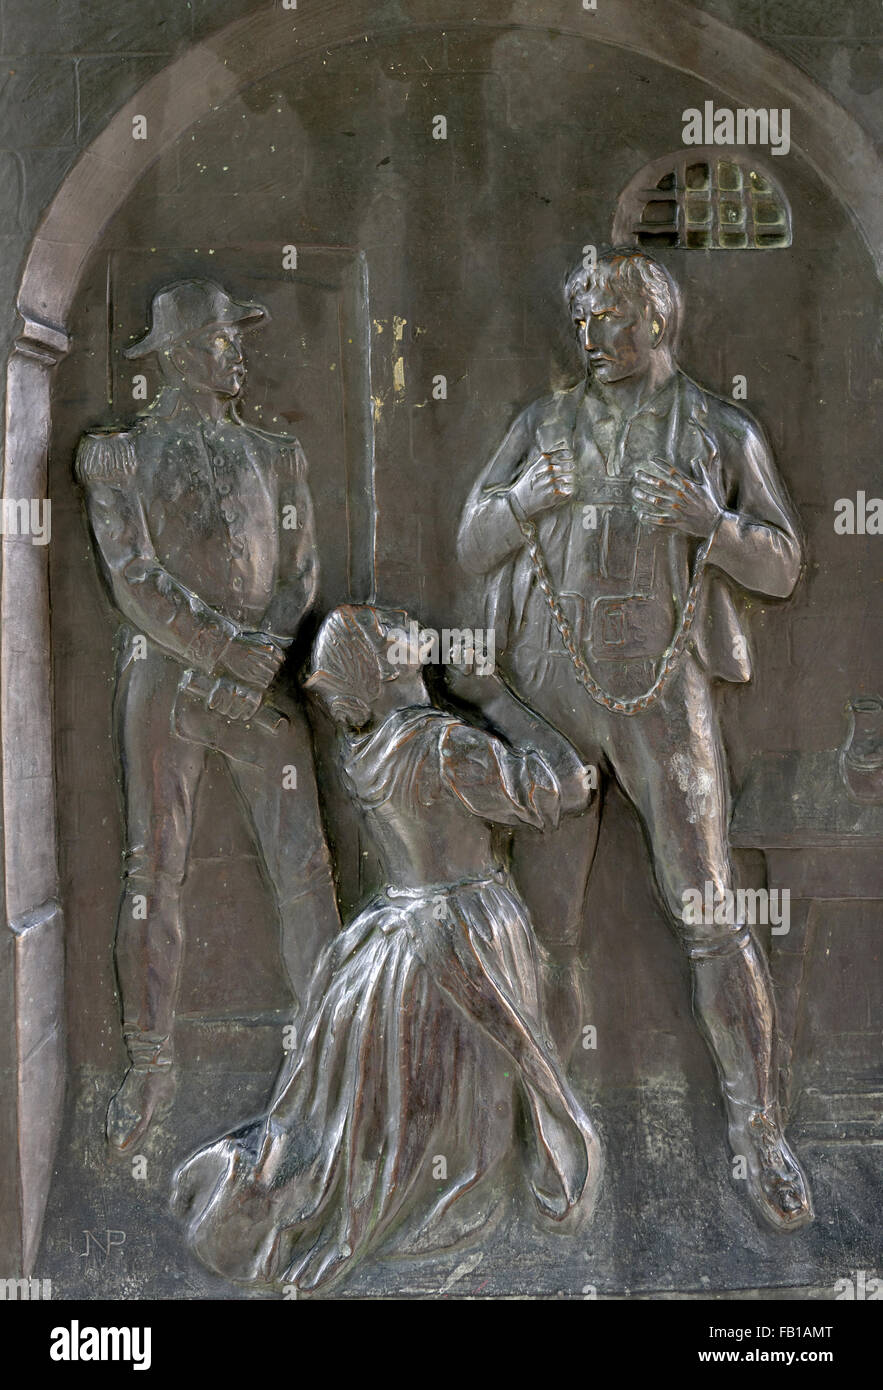 Peter Mayr (1767-1810), saying goodbye to his family, Tyrolean landlord and freedom fighter, bronze plate at Millenniumssäule - Stock Image